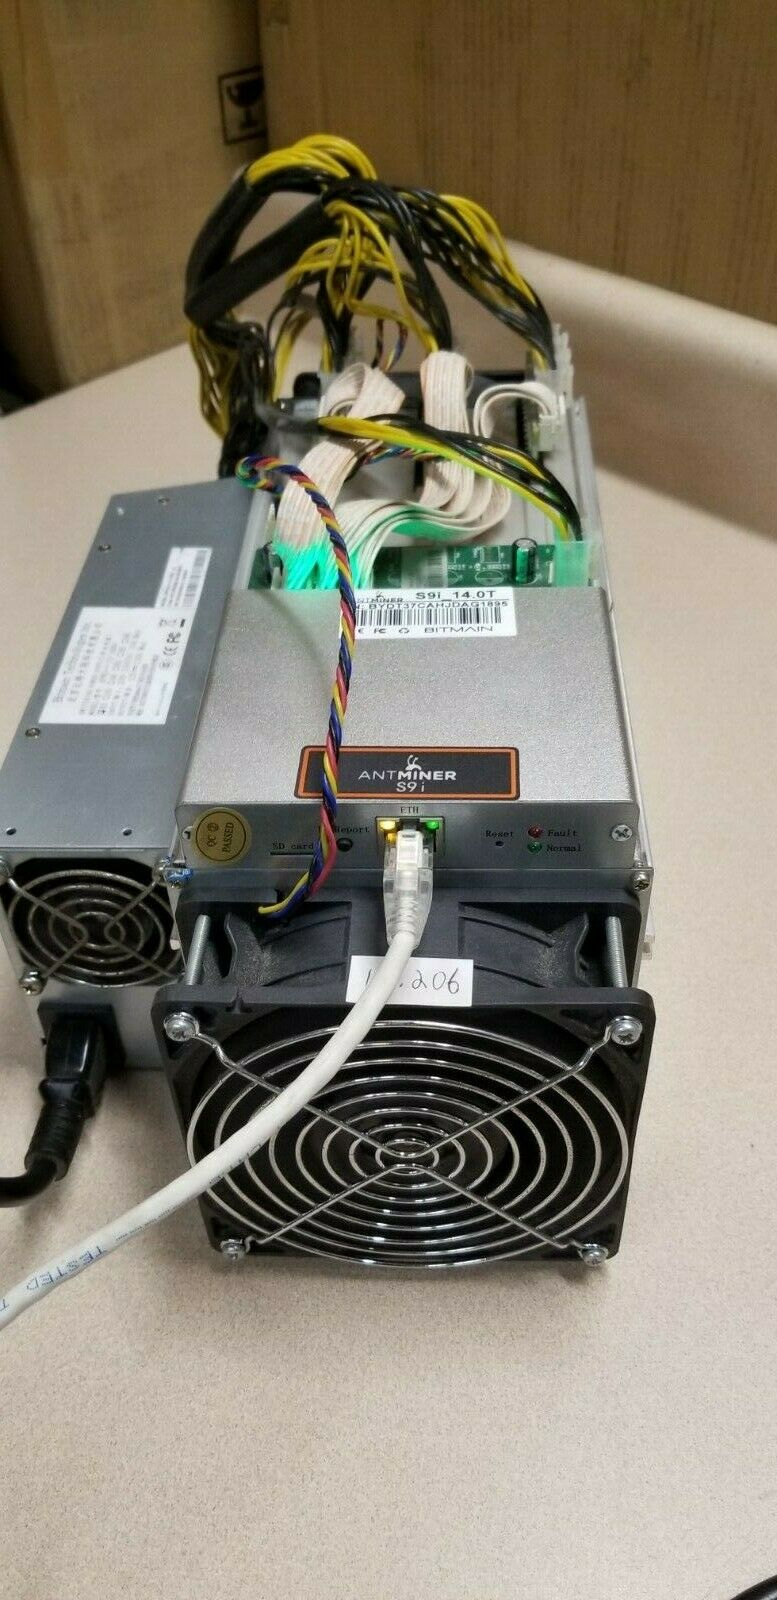 Bitmain Antminer S9i 14 TH/s Bitcoin Miner with 3 650mhz boards 1